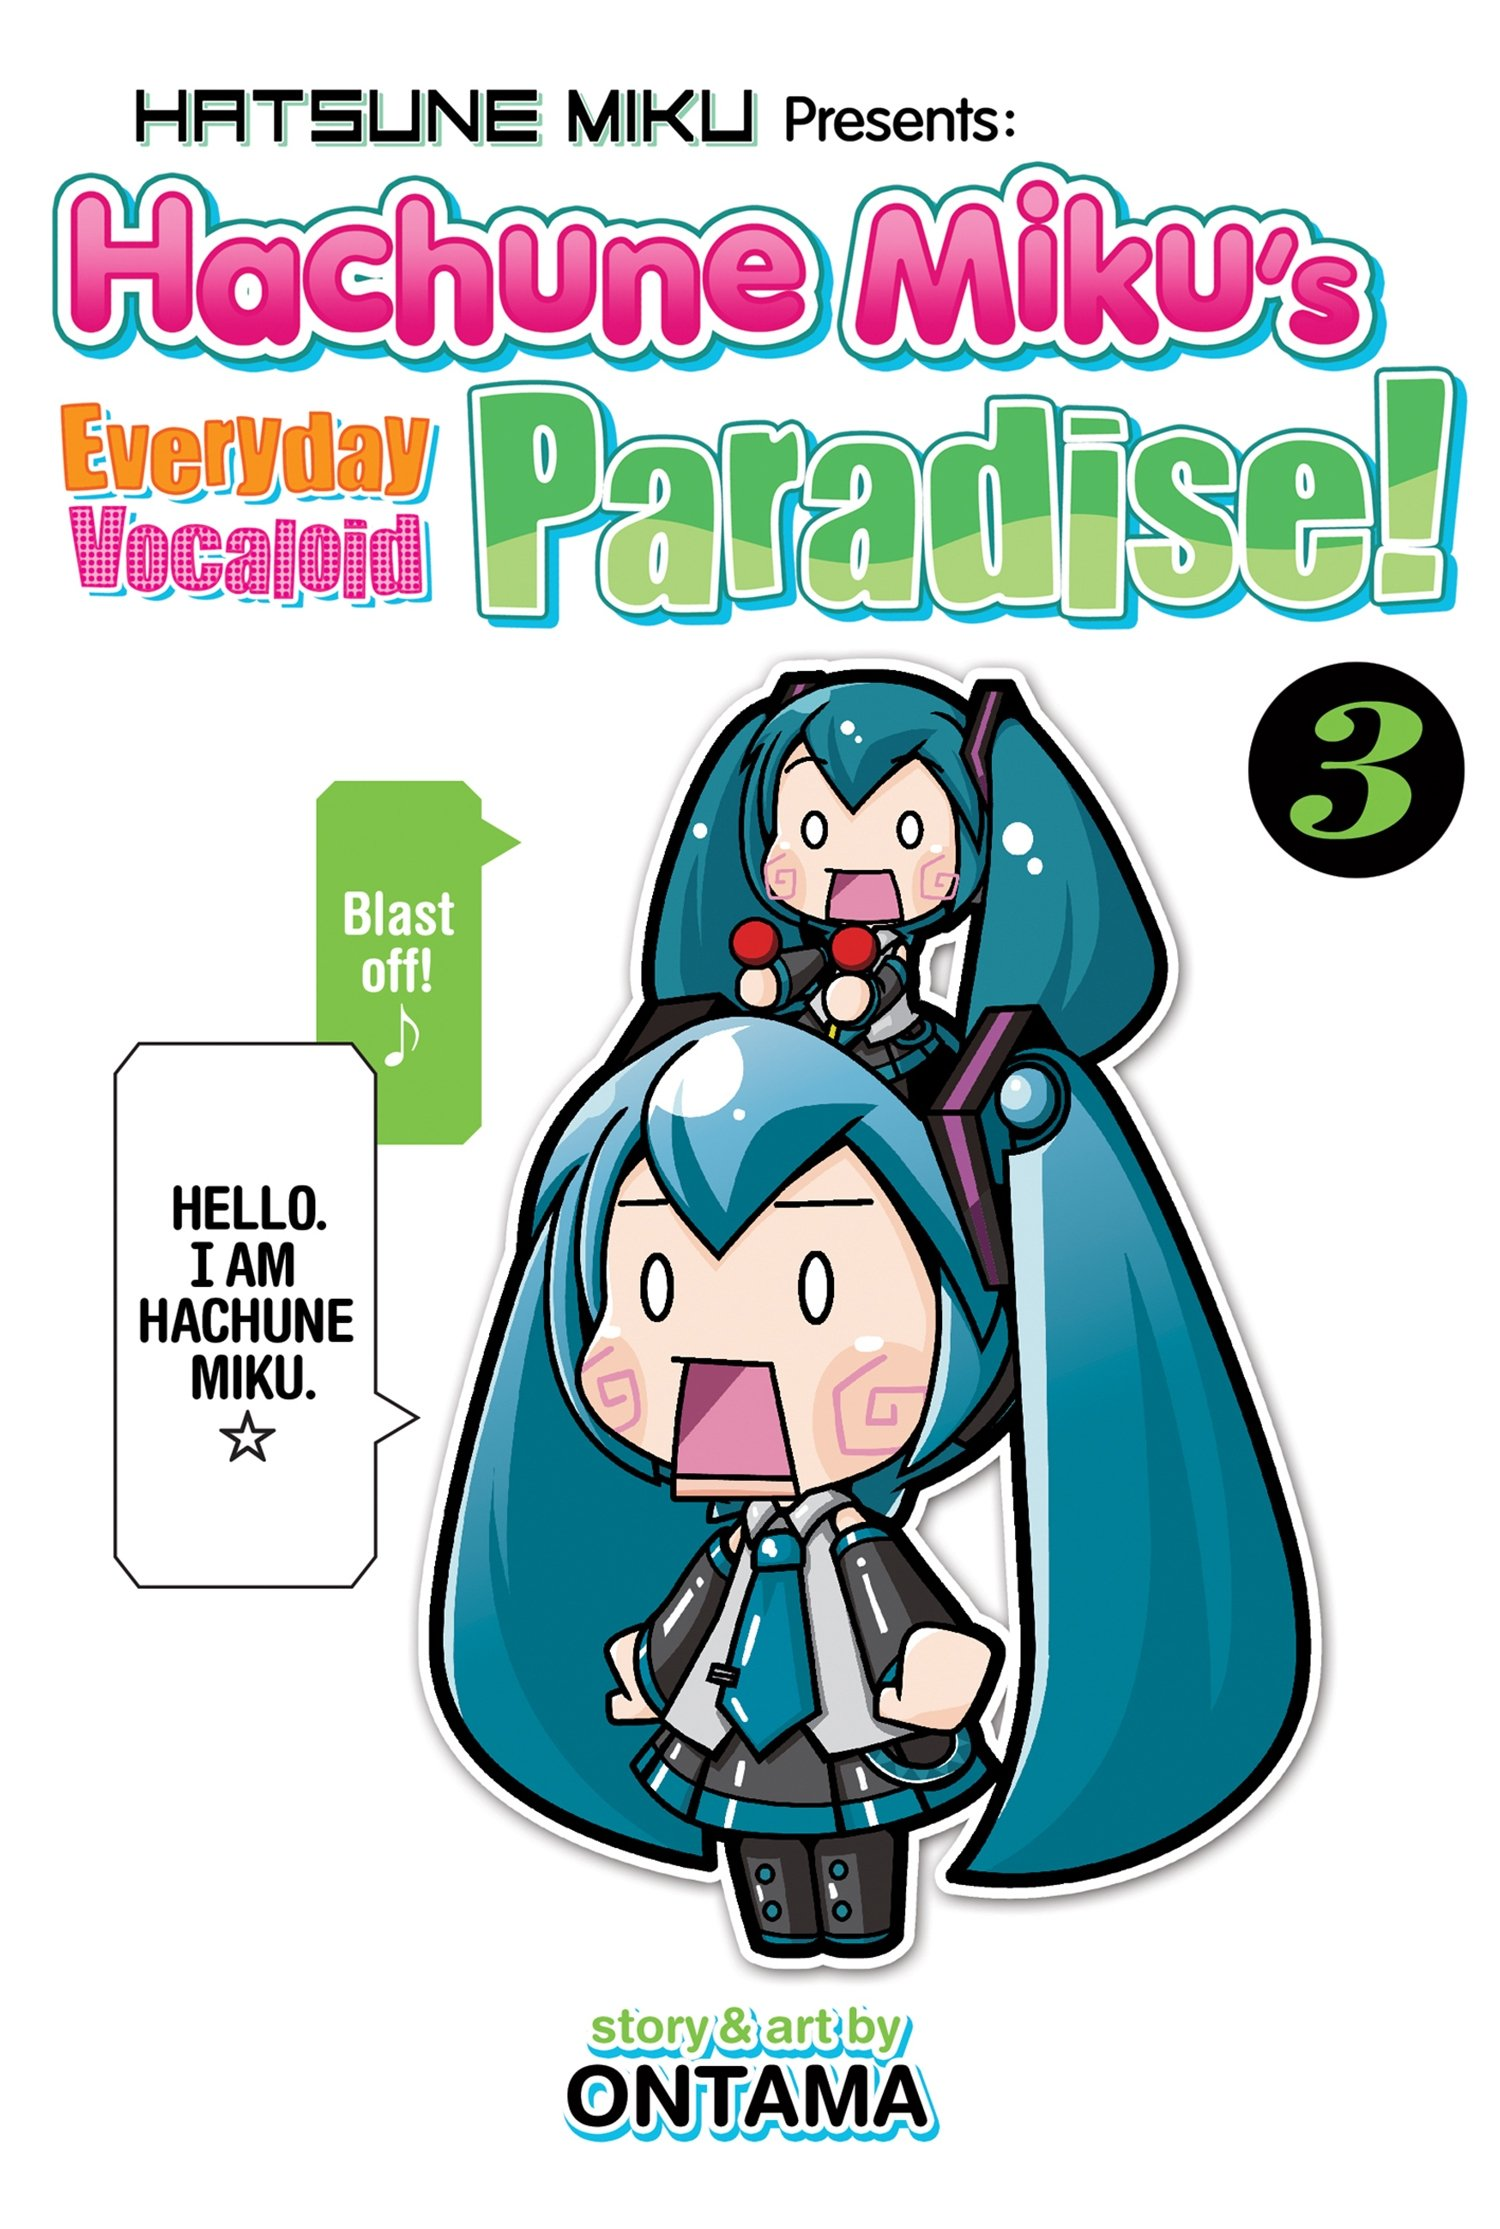 Hatsune Miku Presents: Hachune Miku's Everyday Vocaloid Paradise Vol. 3